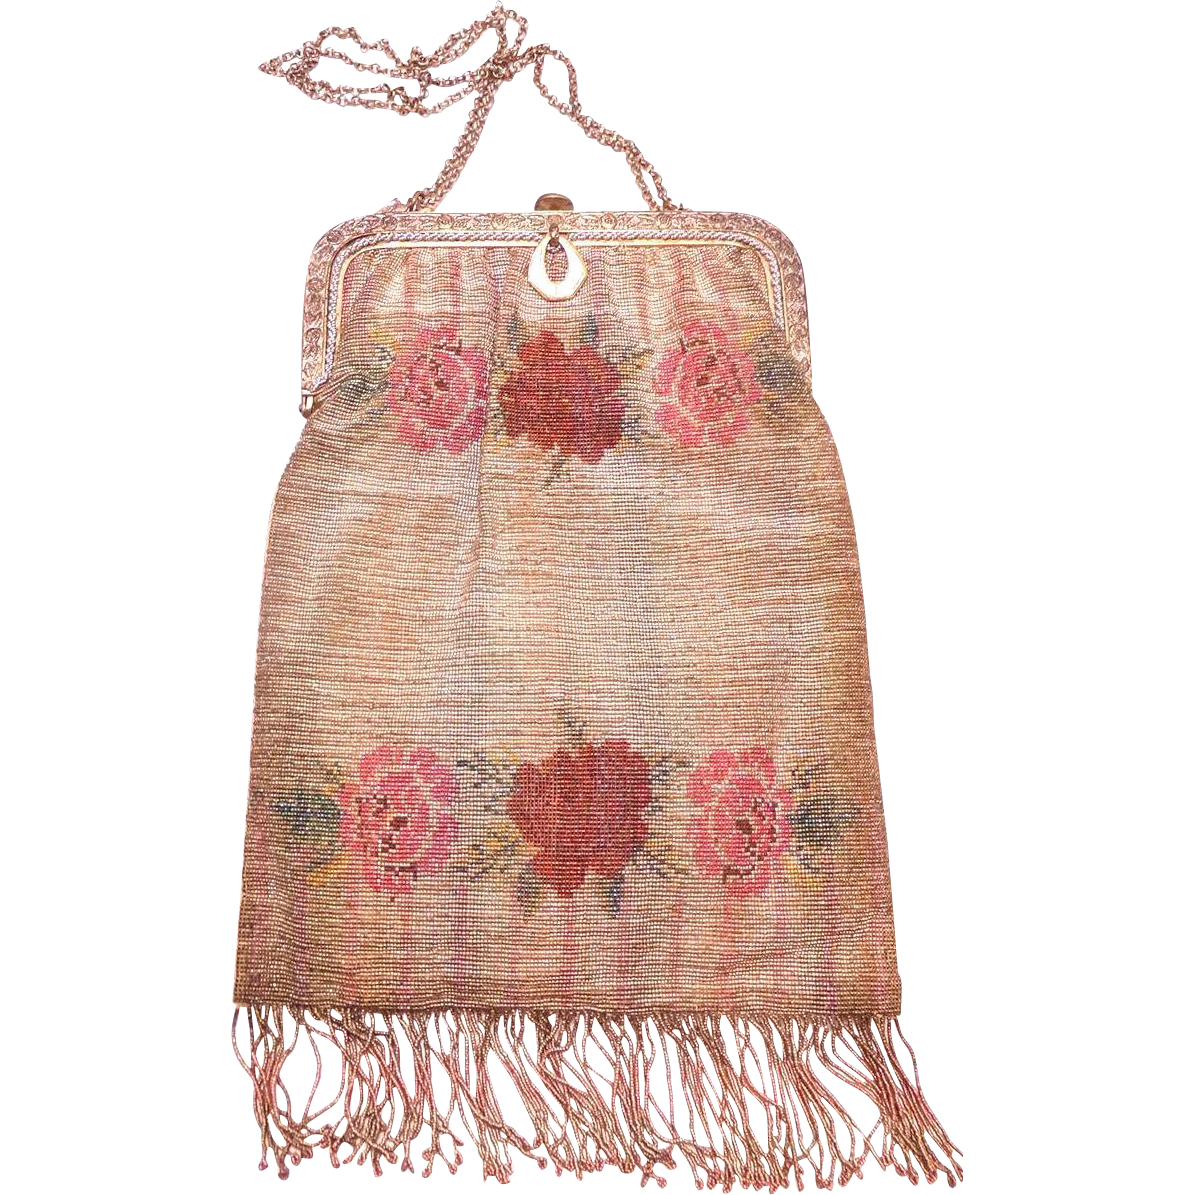 1920s Art Deco Stunning Steel Cut Micro Bead Metallic and Pink Evening Purse with Beaded Roses